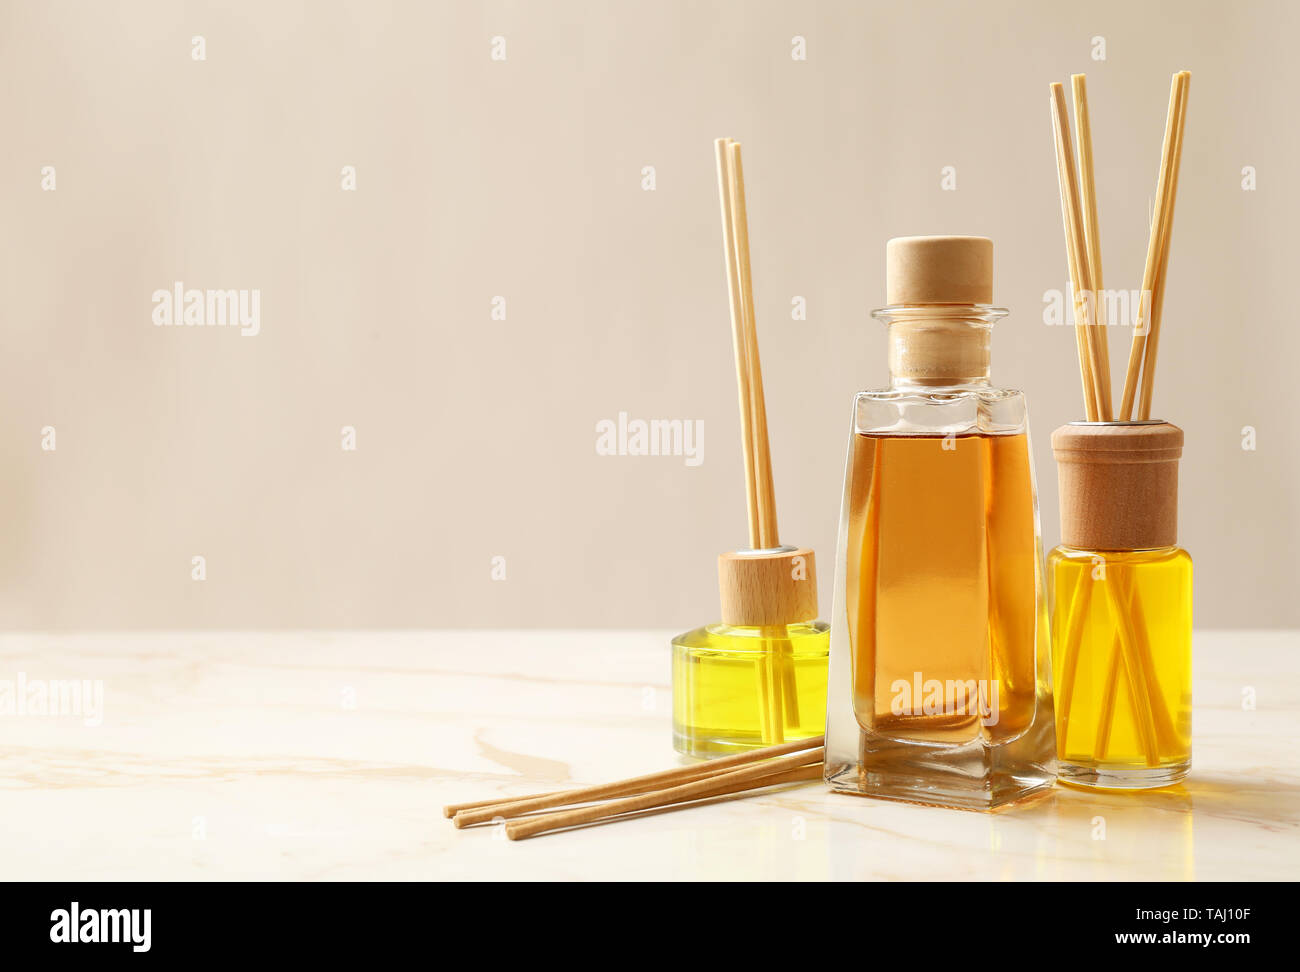 Light Diffusers Stock Photos & Light Diffusers Stock Images